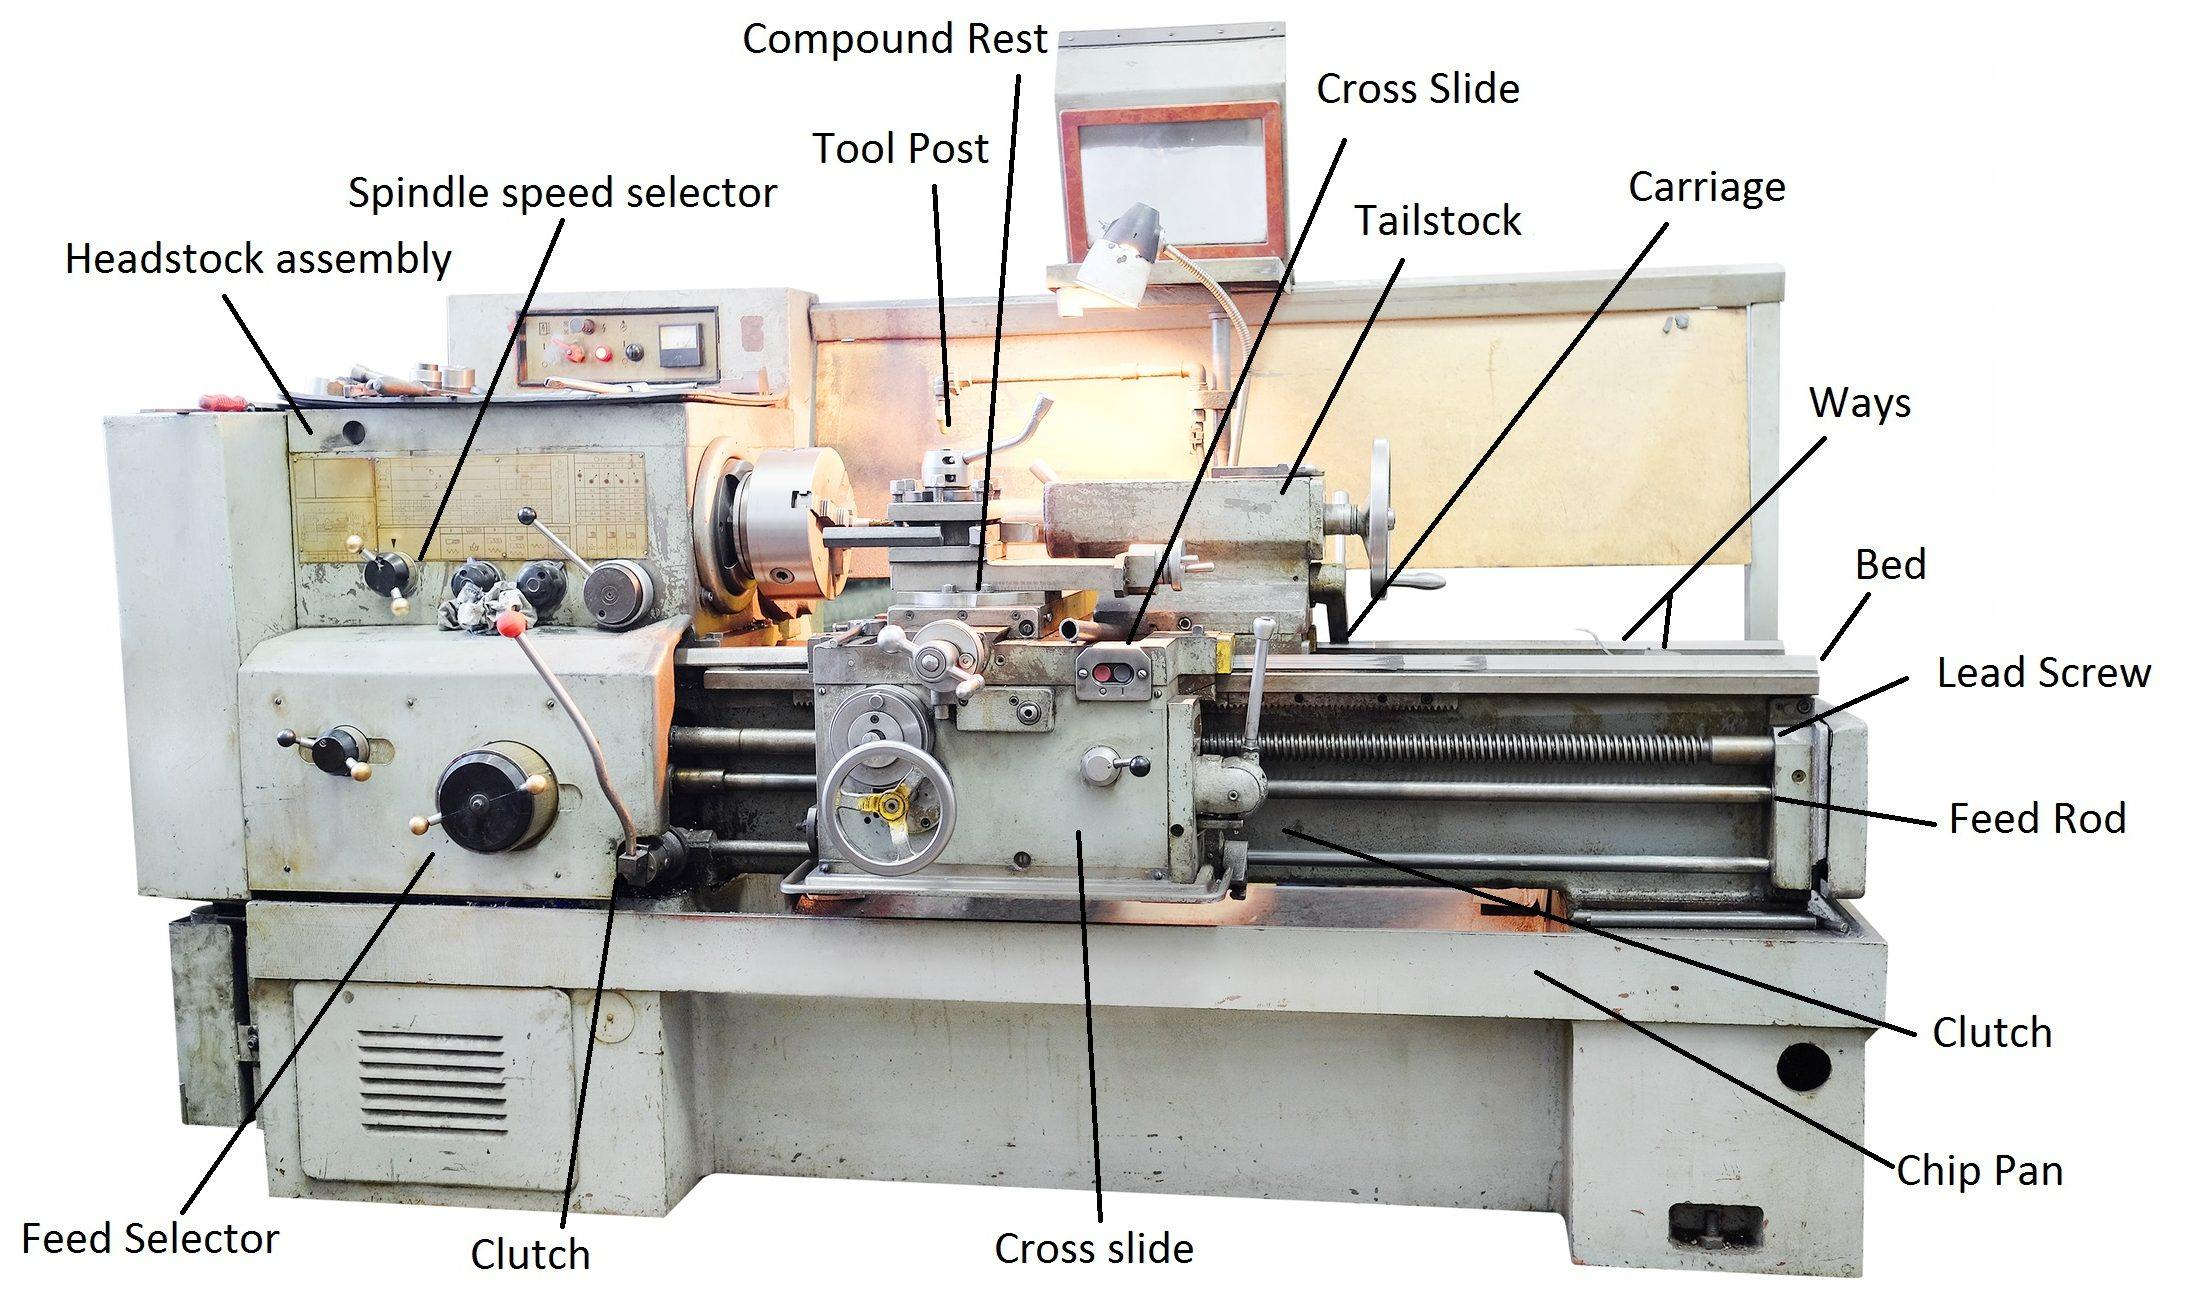 lathe machine parts - Center Lathe